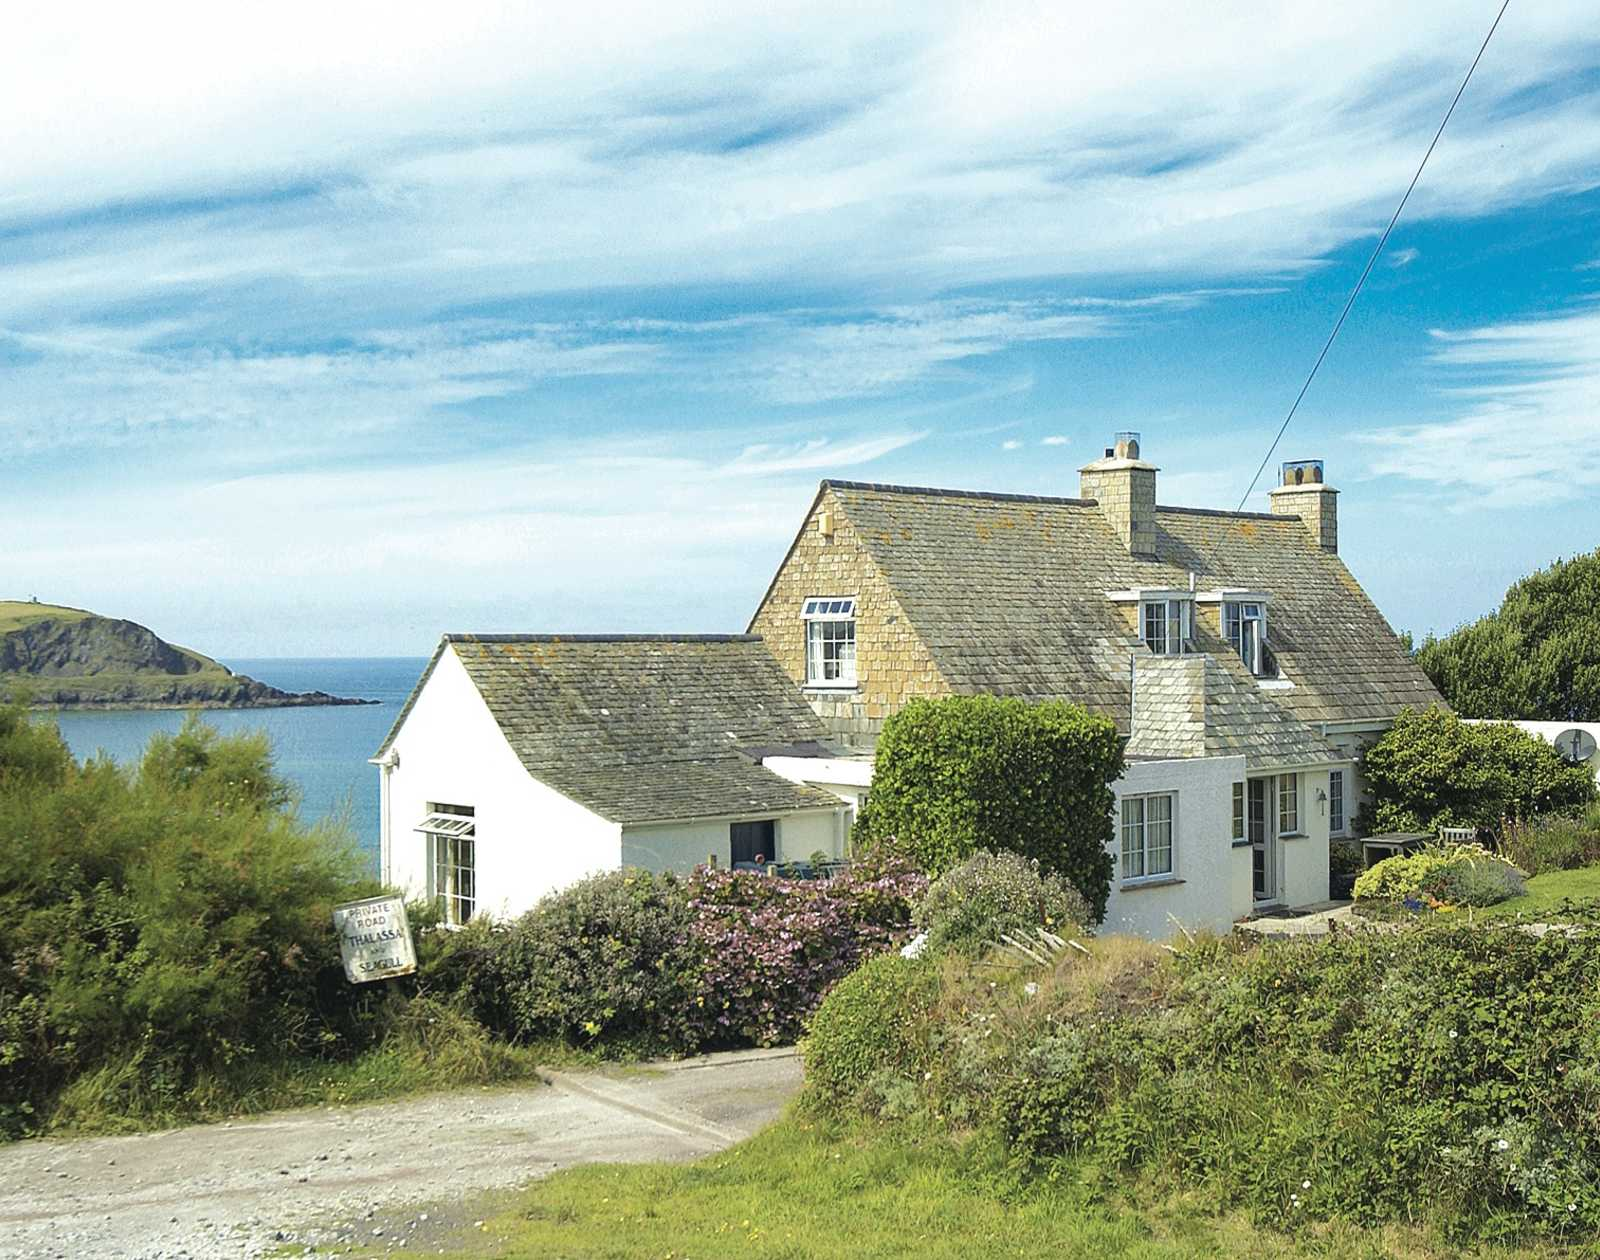 sc white self cornwall cottages cross catering cottage newquay photo the